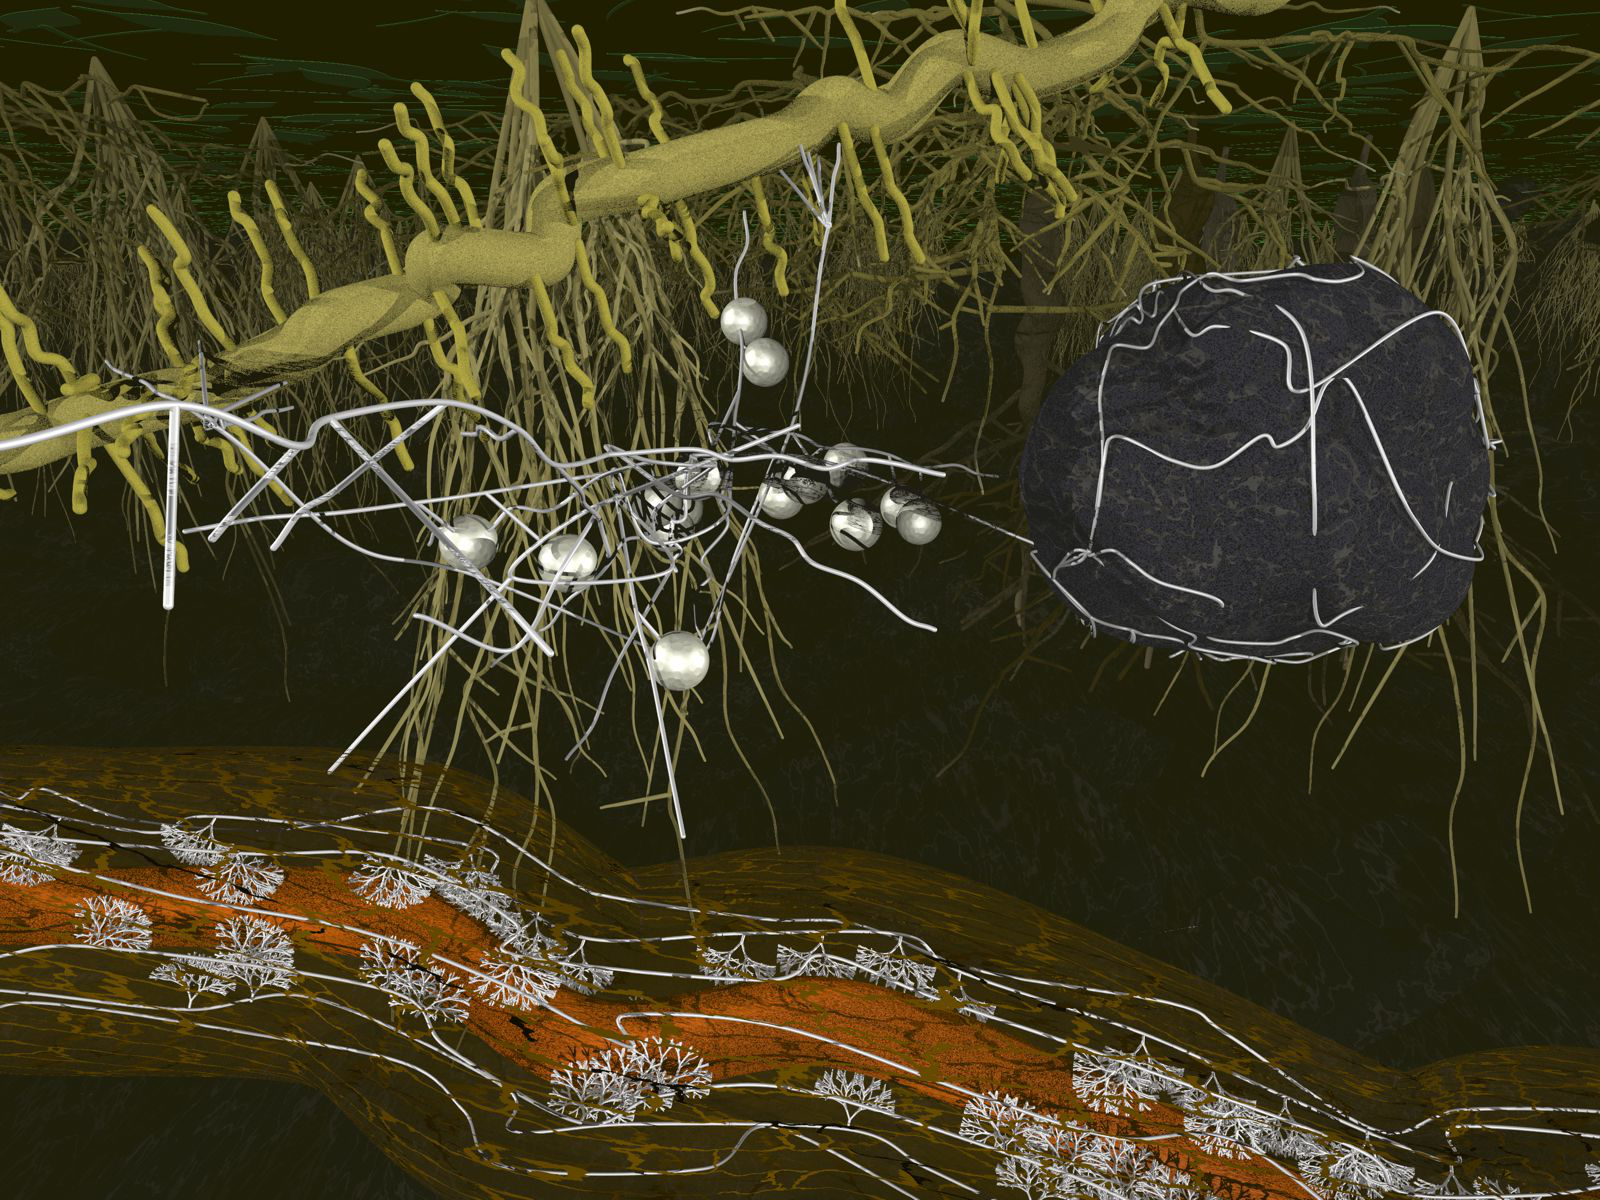 Arbuscular mycorrhiza – ancient belowground connections